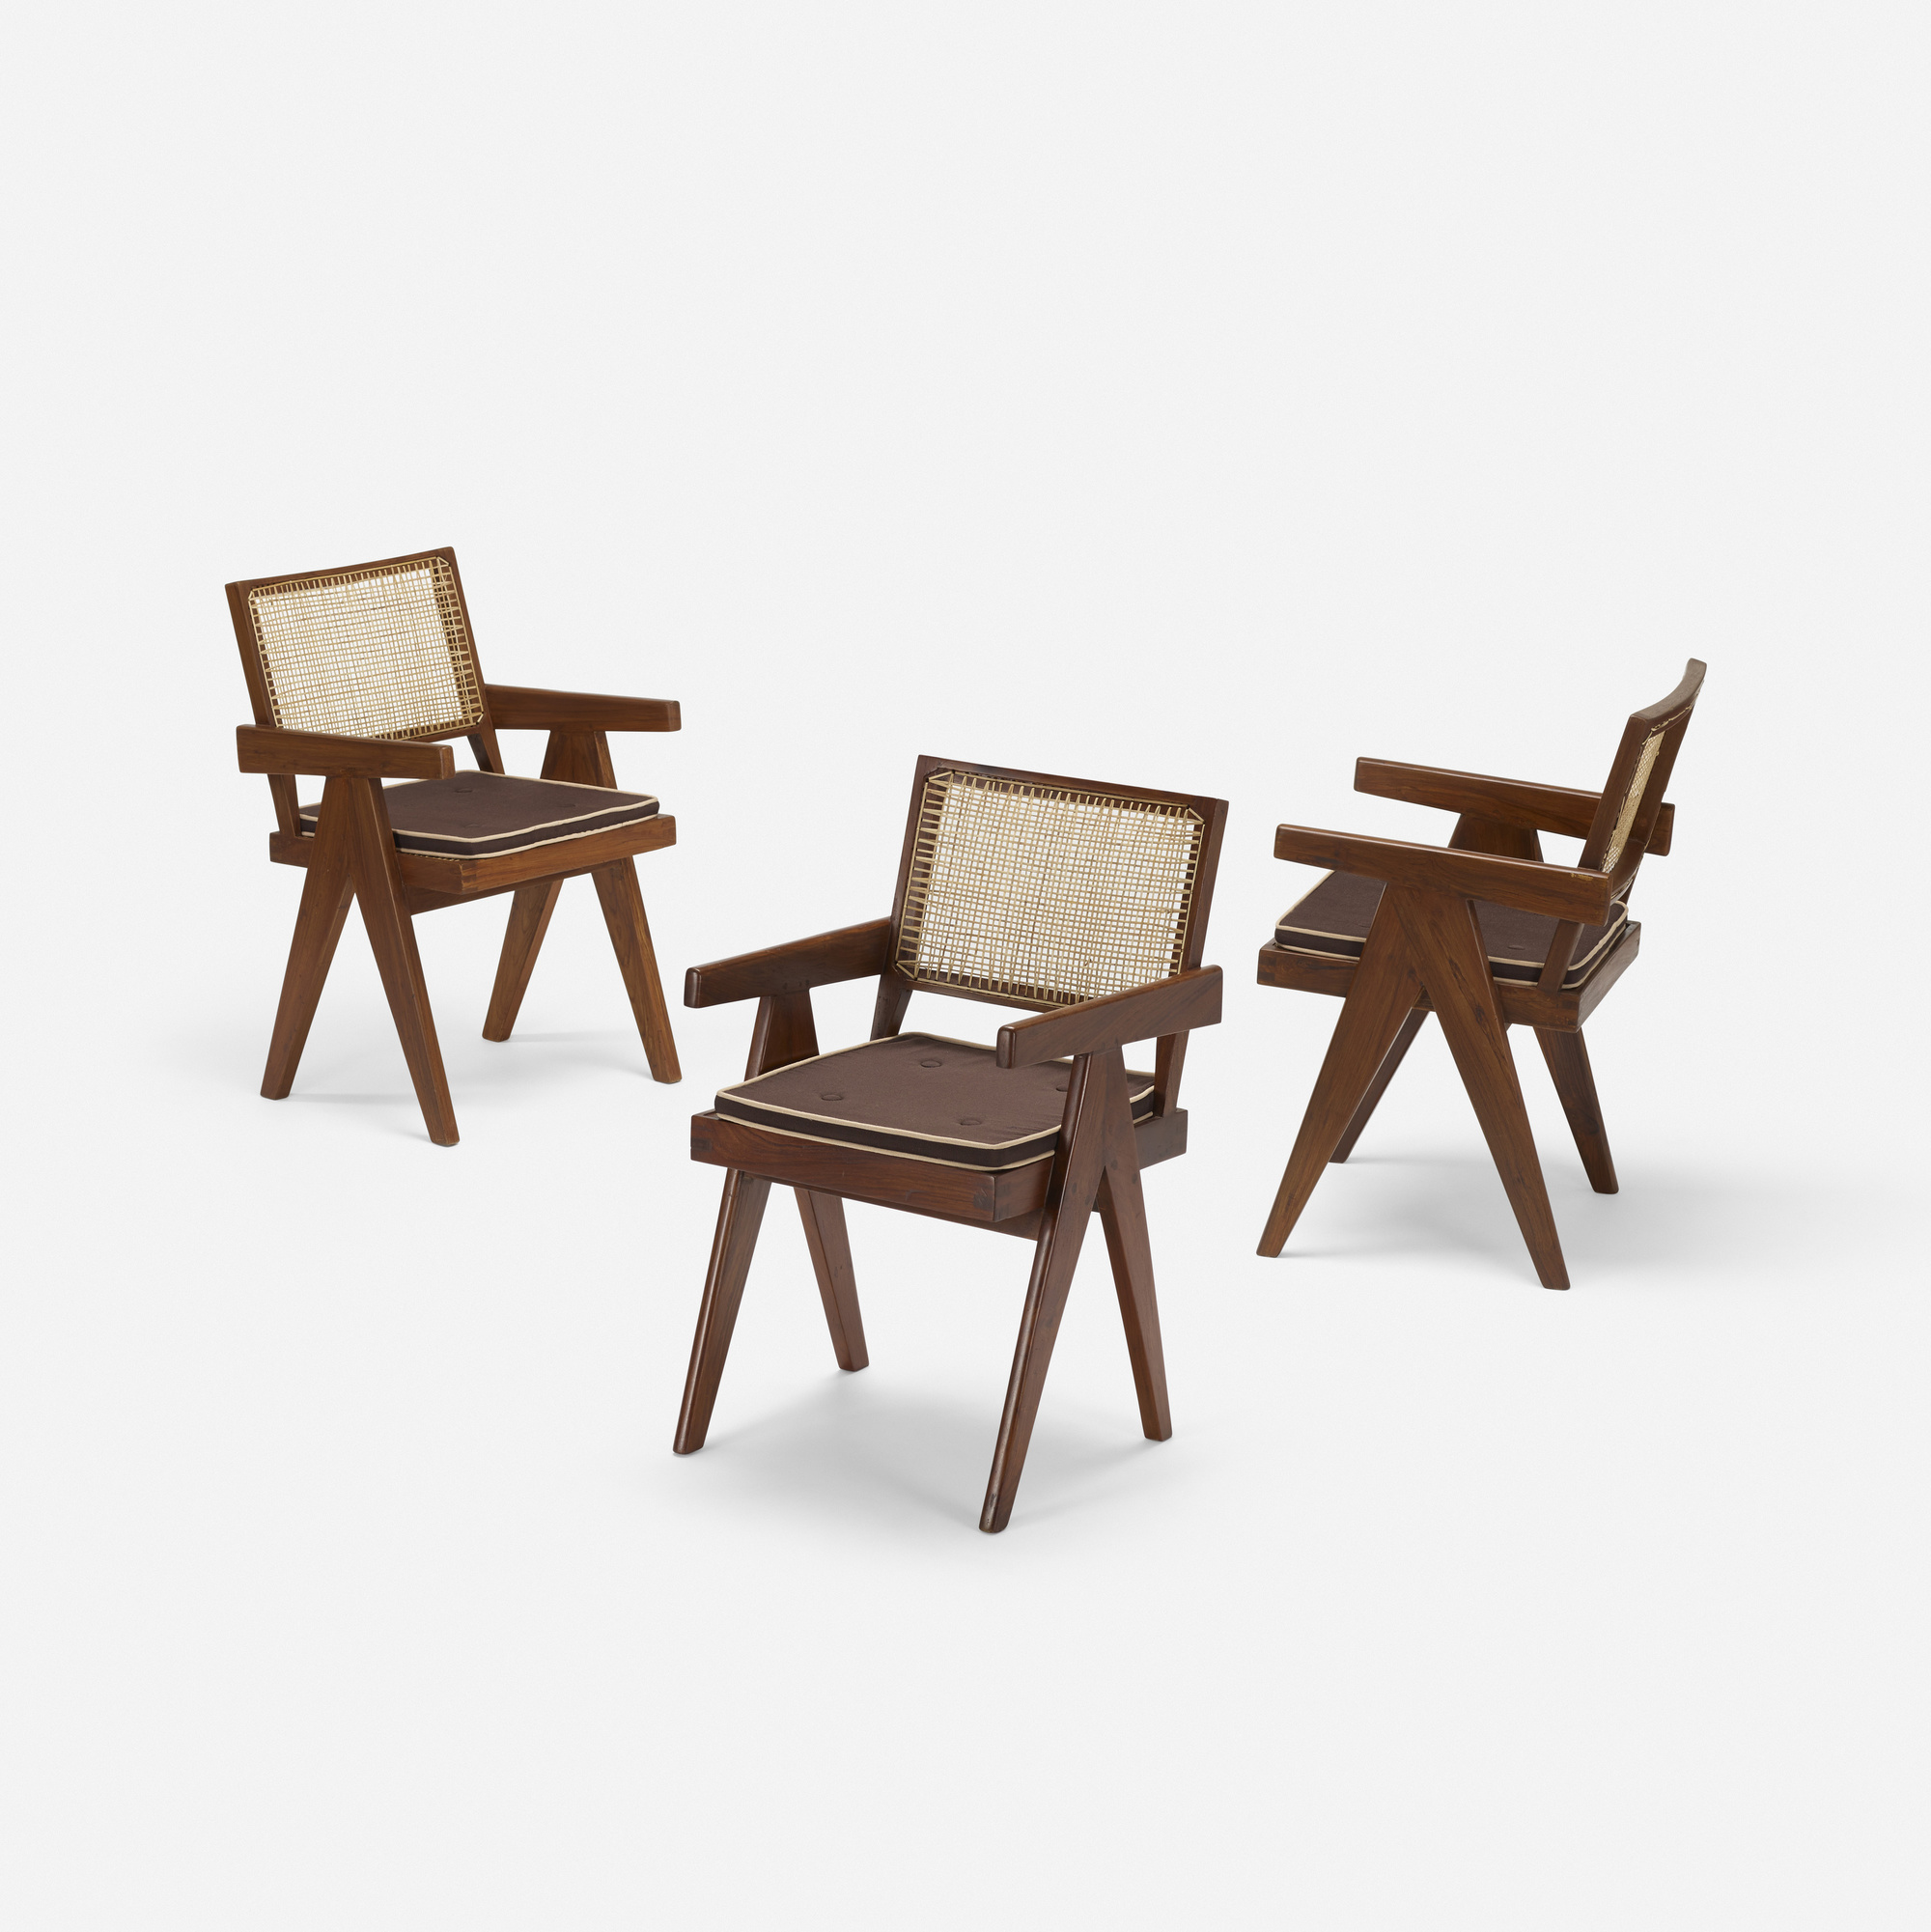 118: Pierre Jeanneret / set of six armchairs from Chandigarh (2 of 3)